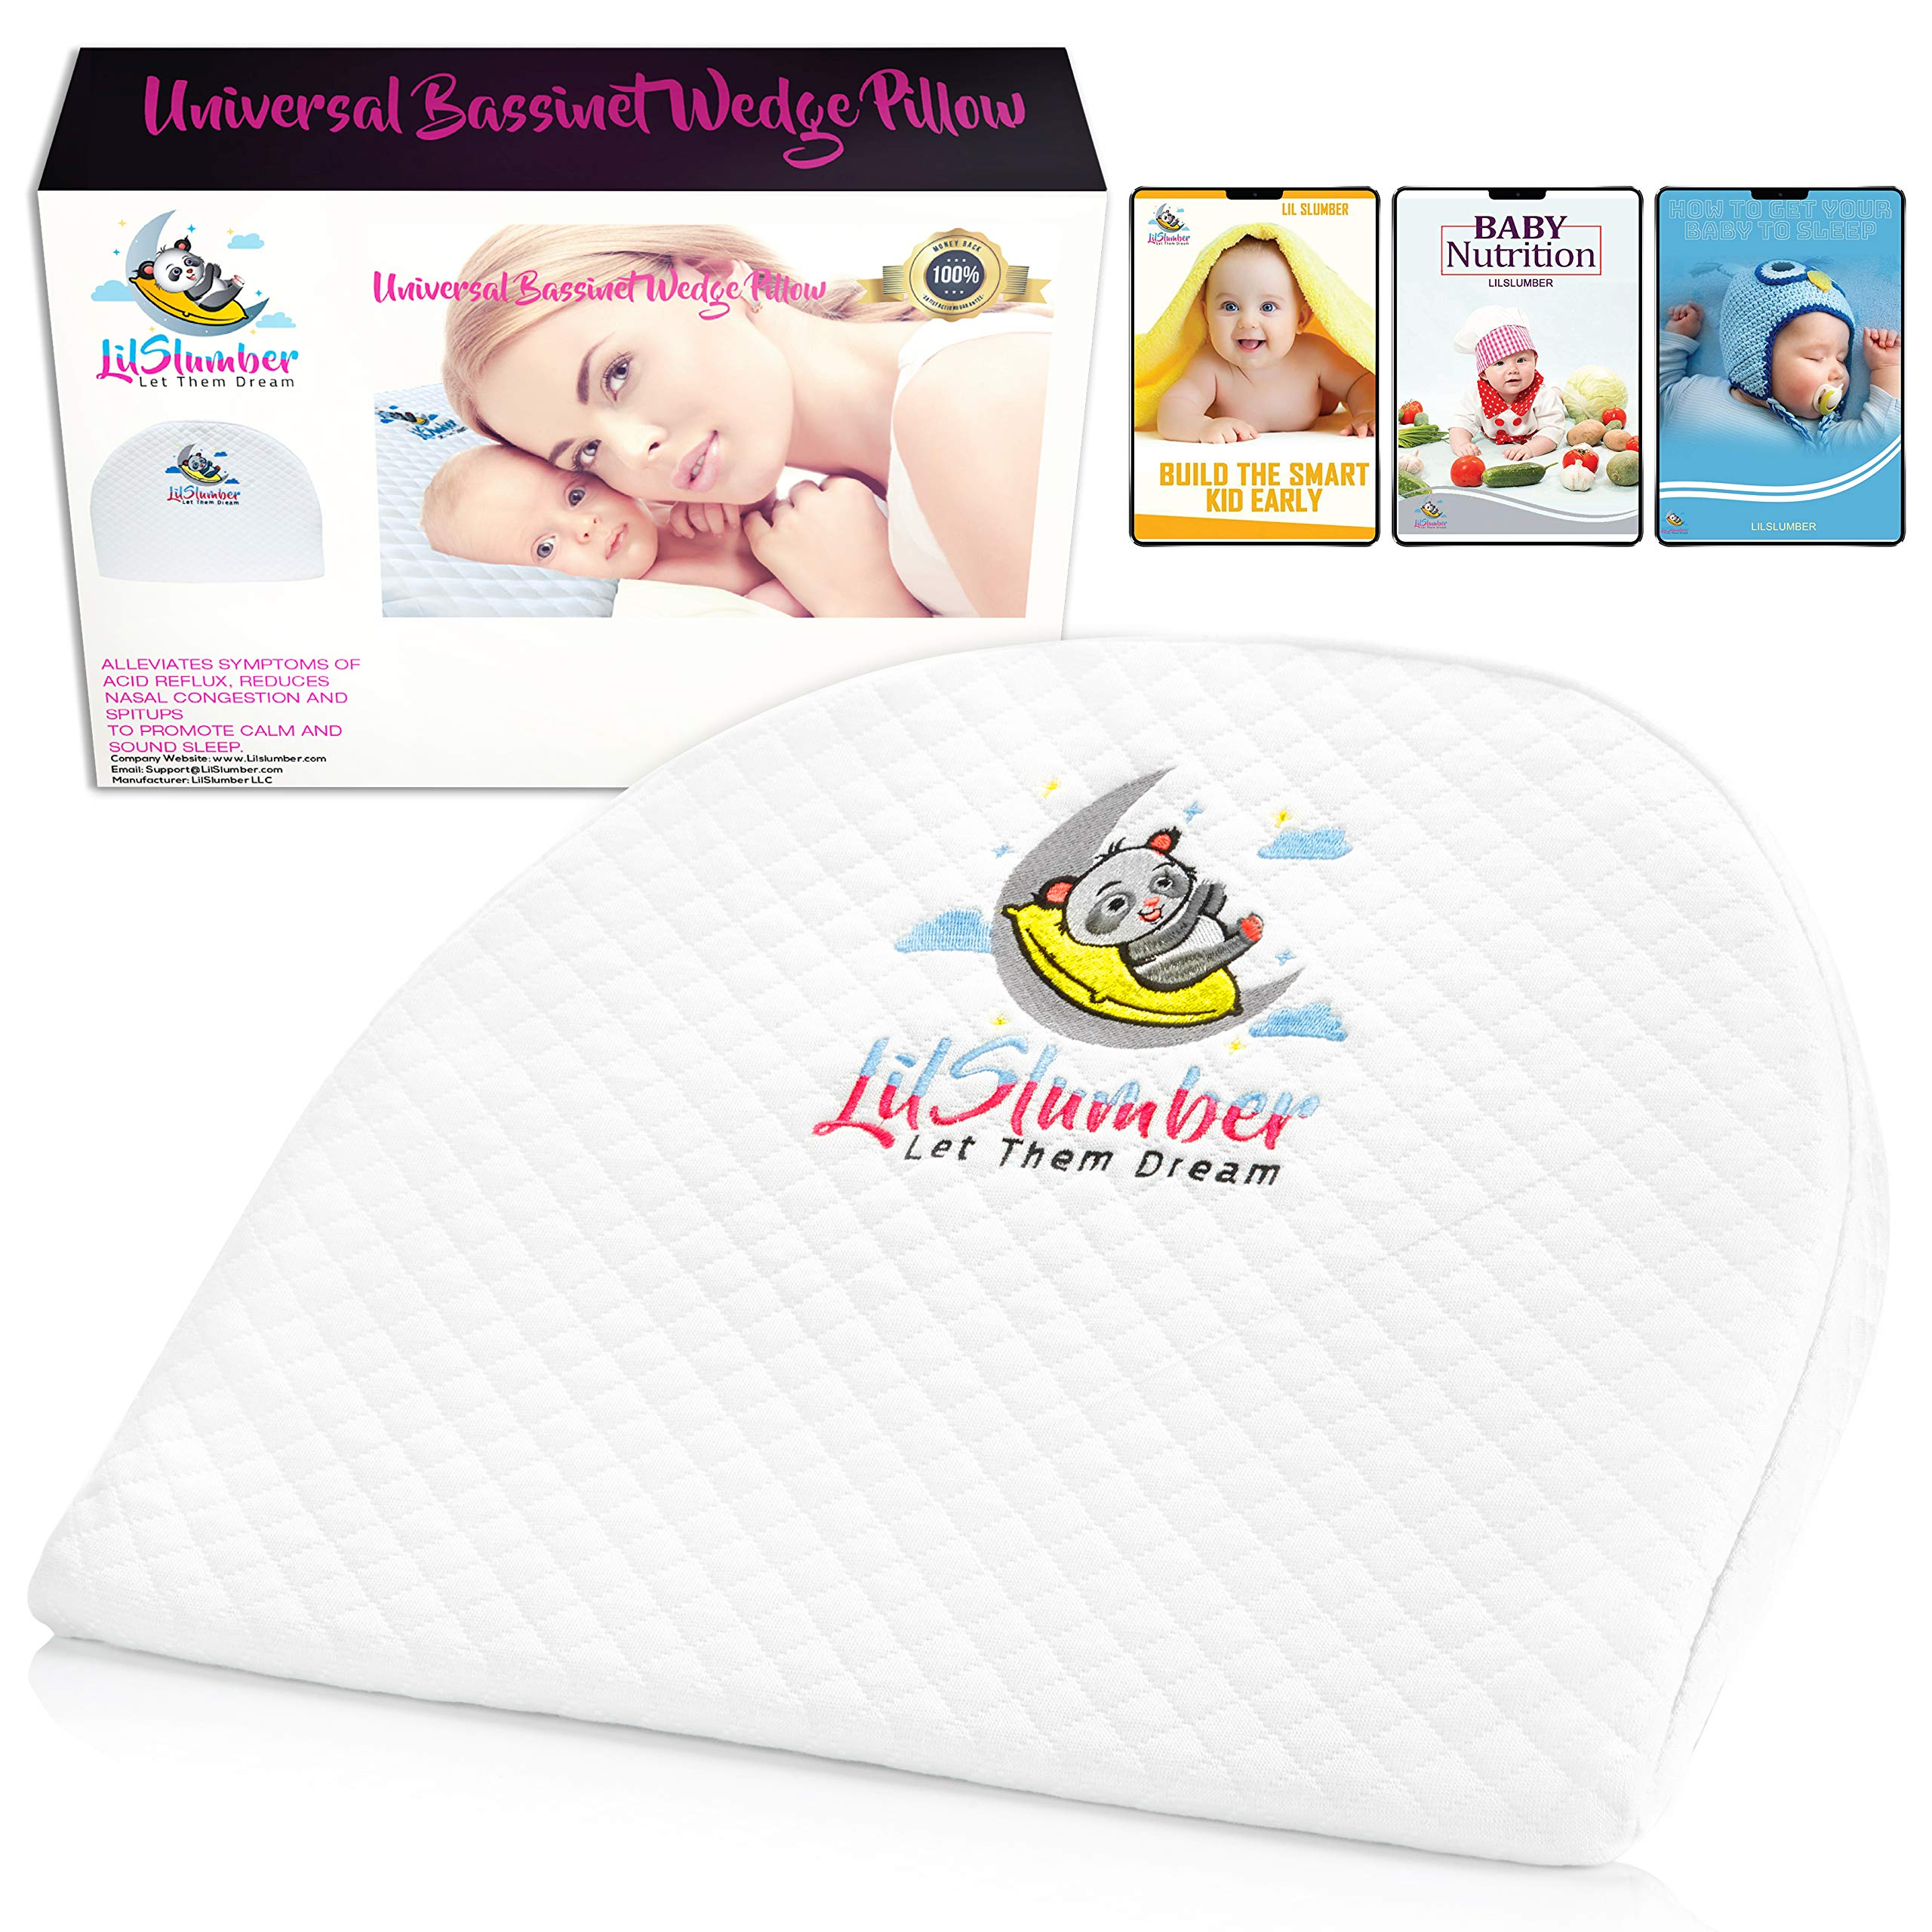 LilSlumber Baby Bassinet and Crib Reflux Wedge Pillow | Infant Sleep Positioner for GERD and Nasal Congestion Relief | Premium Hypoallergenic Cotton and Waterproof Covers | 3 Parenting EBooks by LilSlumber